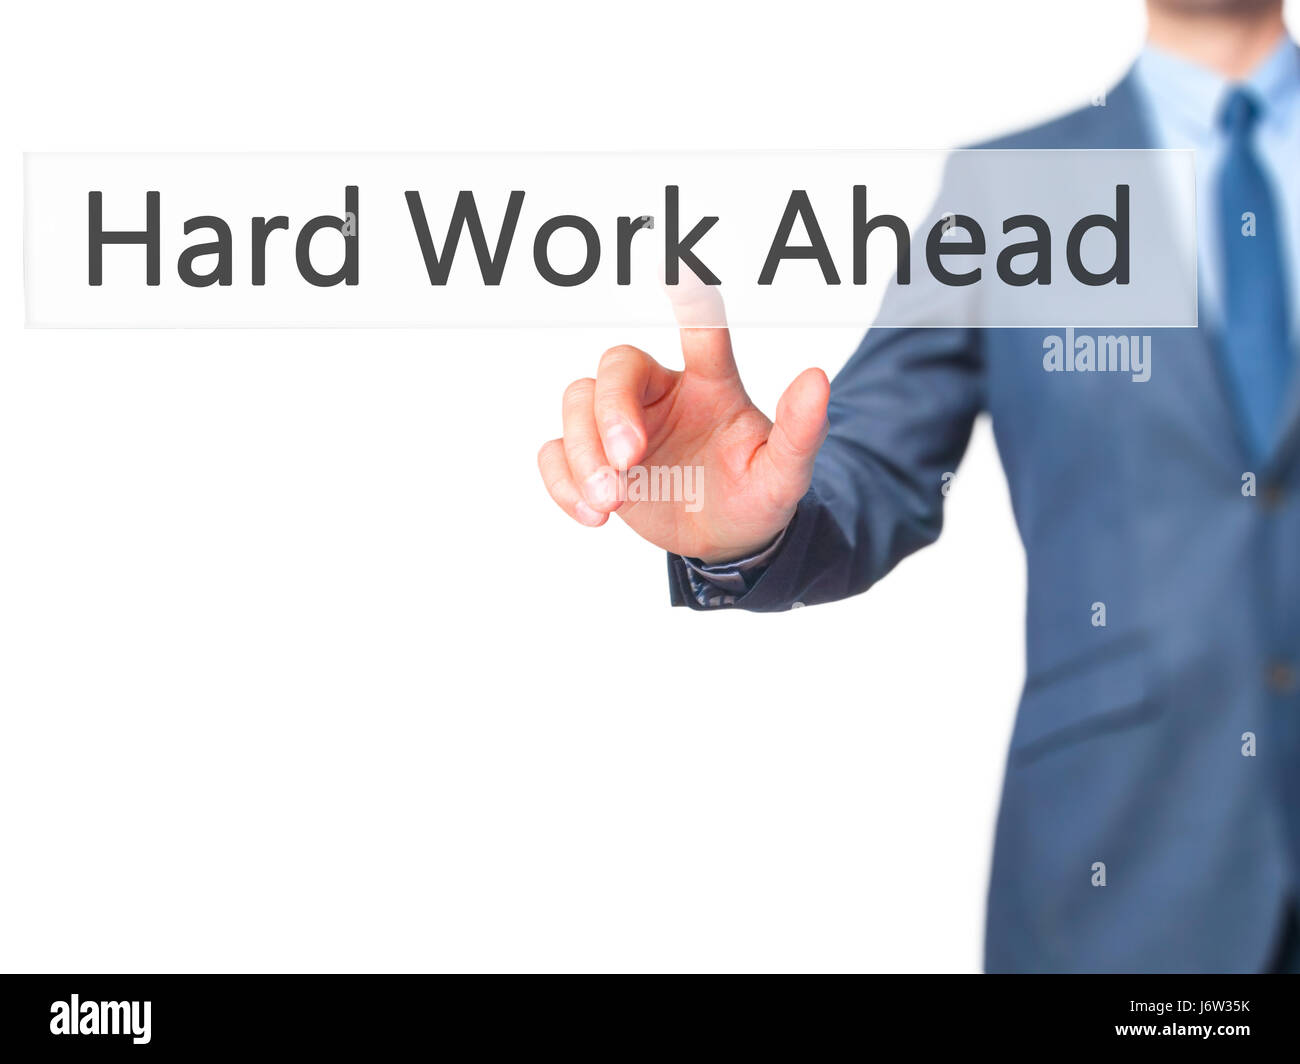 Hard Work Ahead - Businessman hand pressing button on touch screen interface. Business, technology, internet concept. - Stock Image